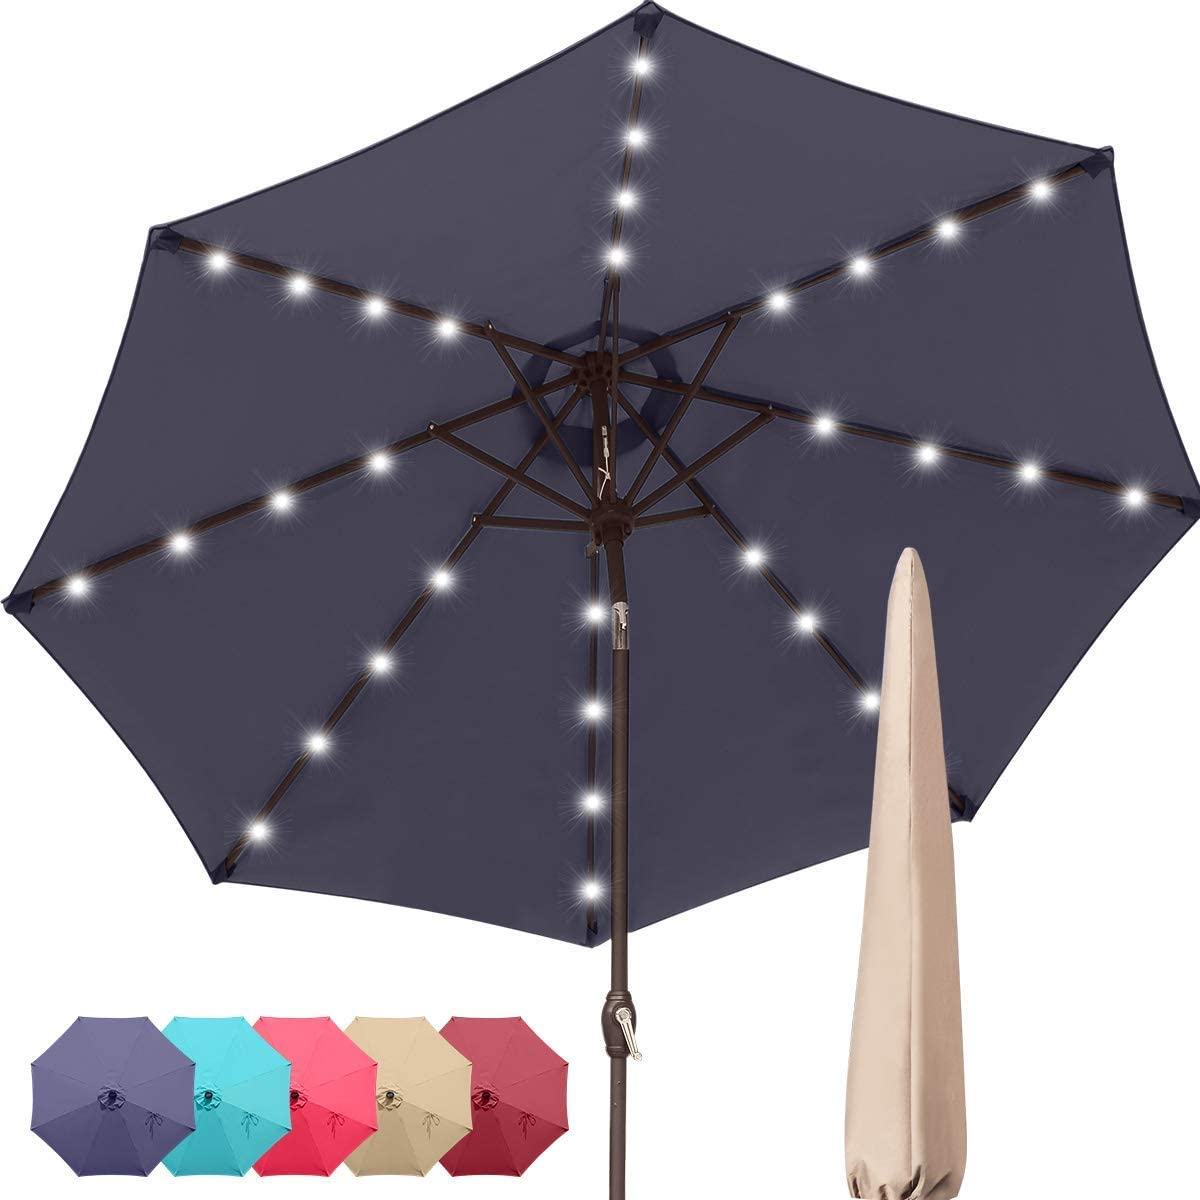 Quictent 9Ft Patio Umbrella 32 Solar LED Lighted Outdoor Garden Table Canopy Market Umbrella Pool Backyard with Ventilation 3 Years Non-Fading Top 8 Ribs 240G Yarn-Dyed Fabric Navy Blue